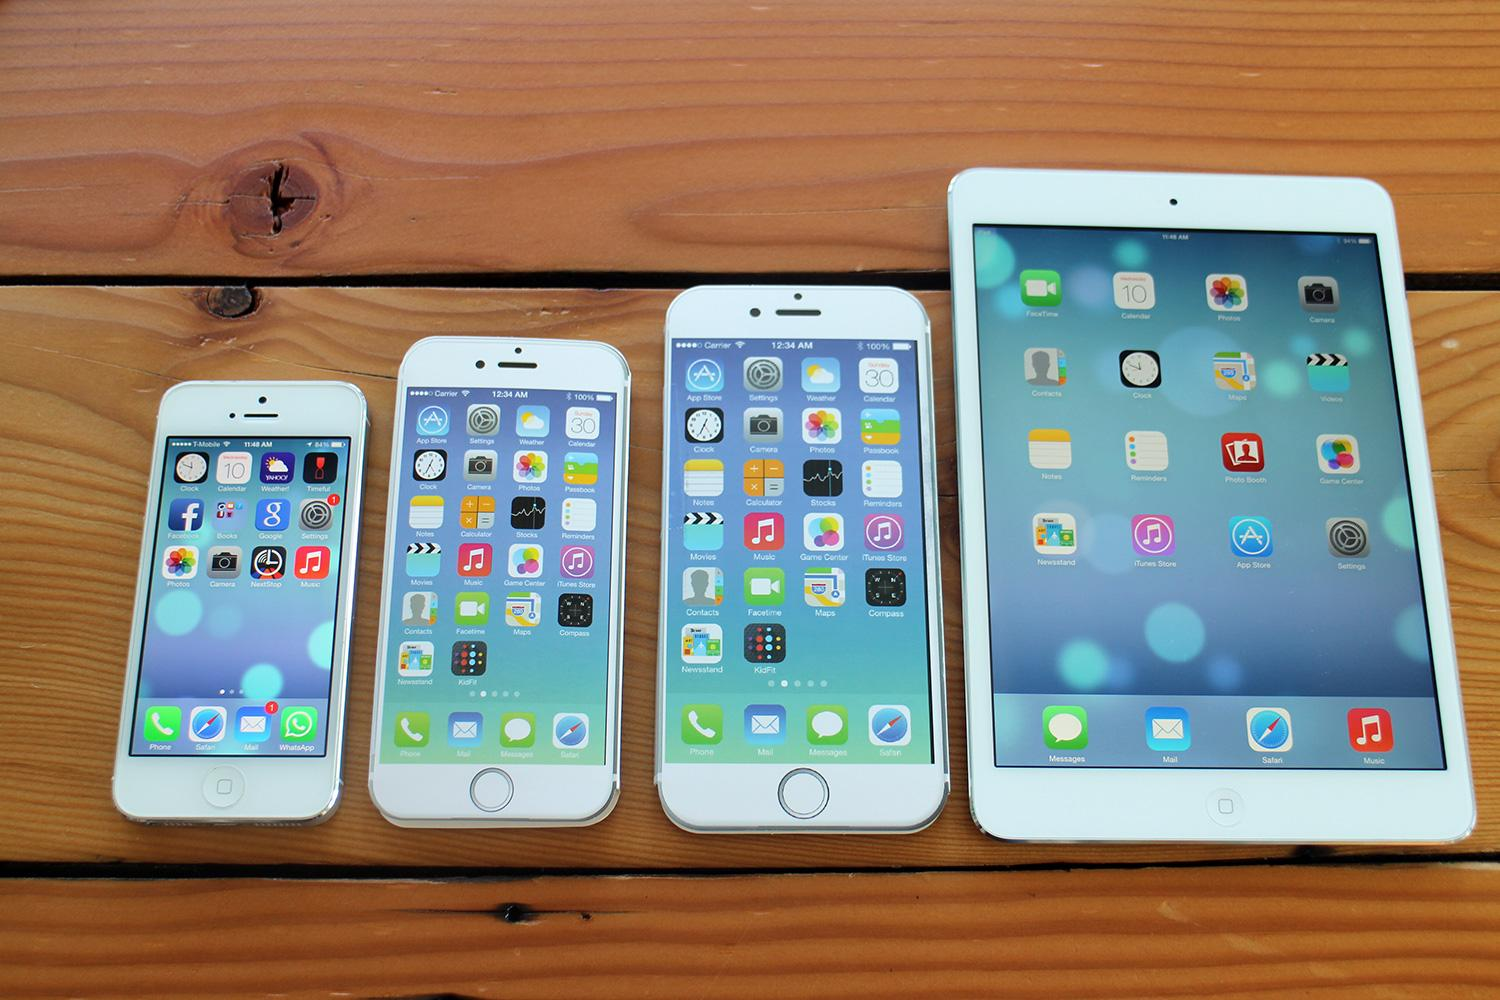 iPhone 6 Denting iPad Usage, Study Shows